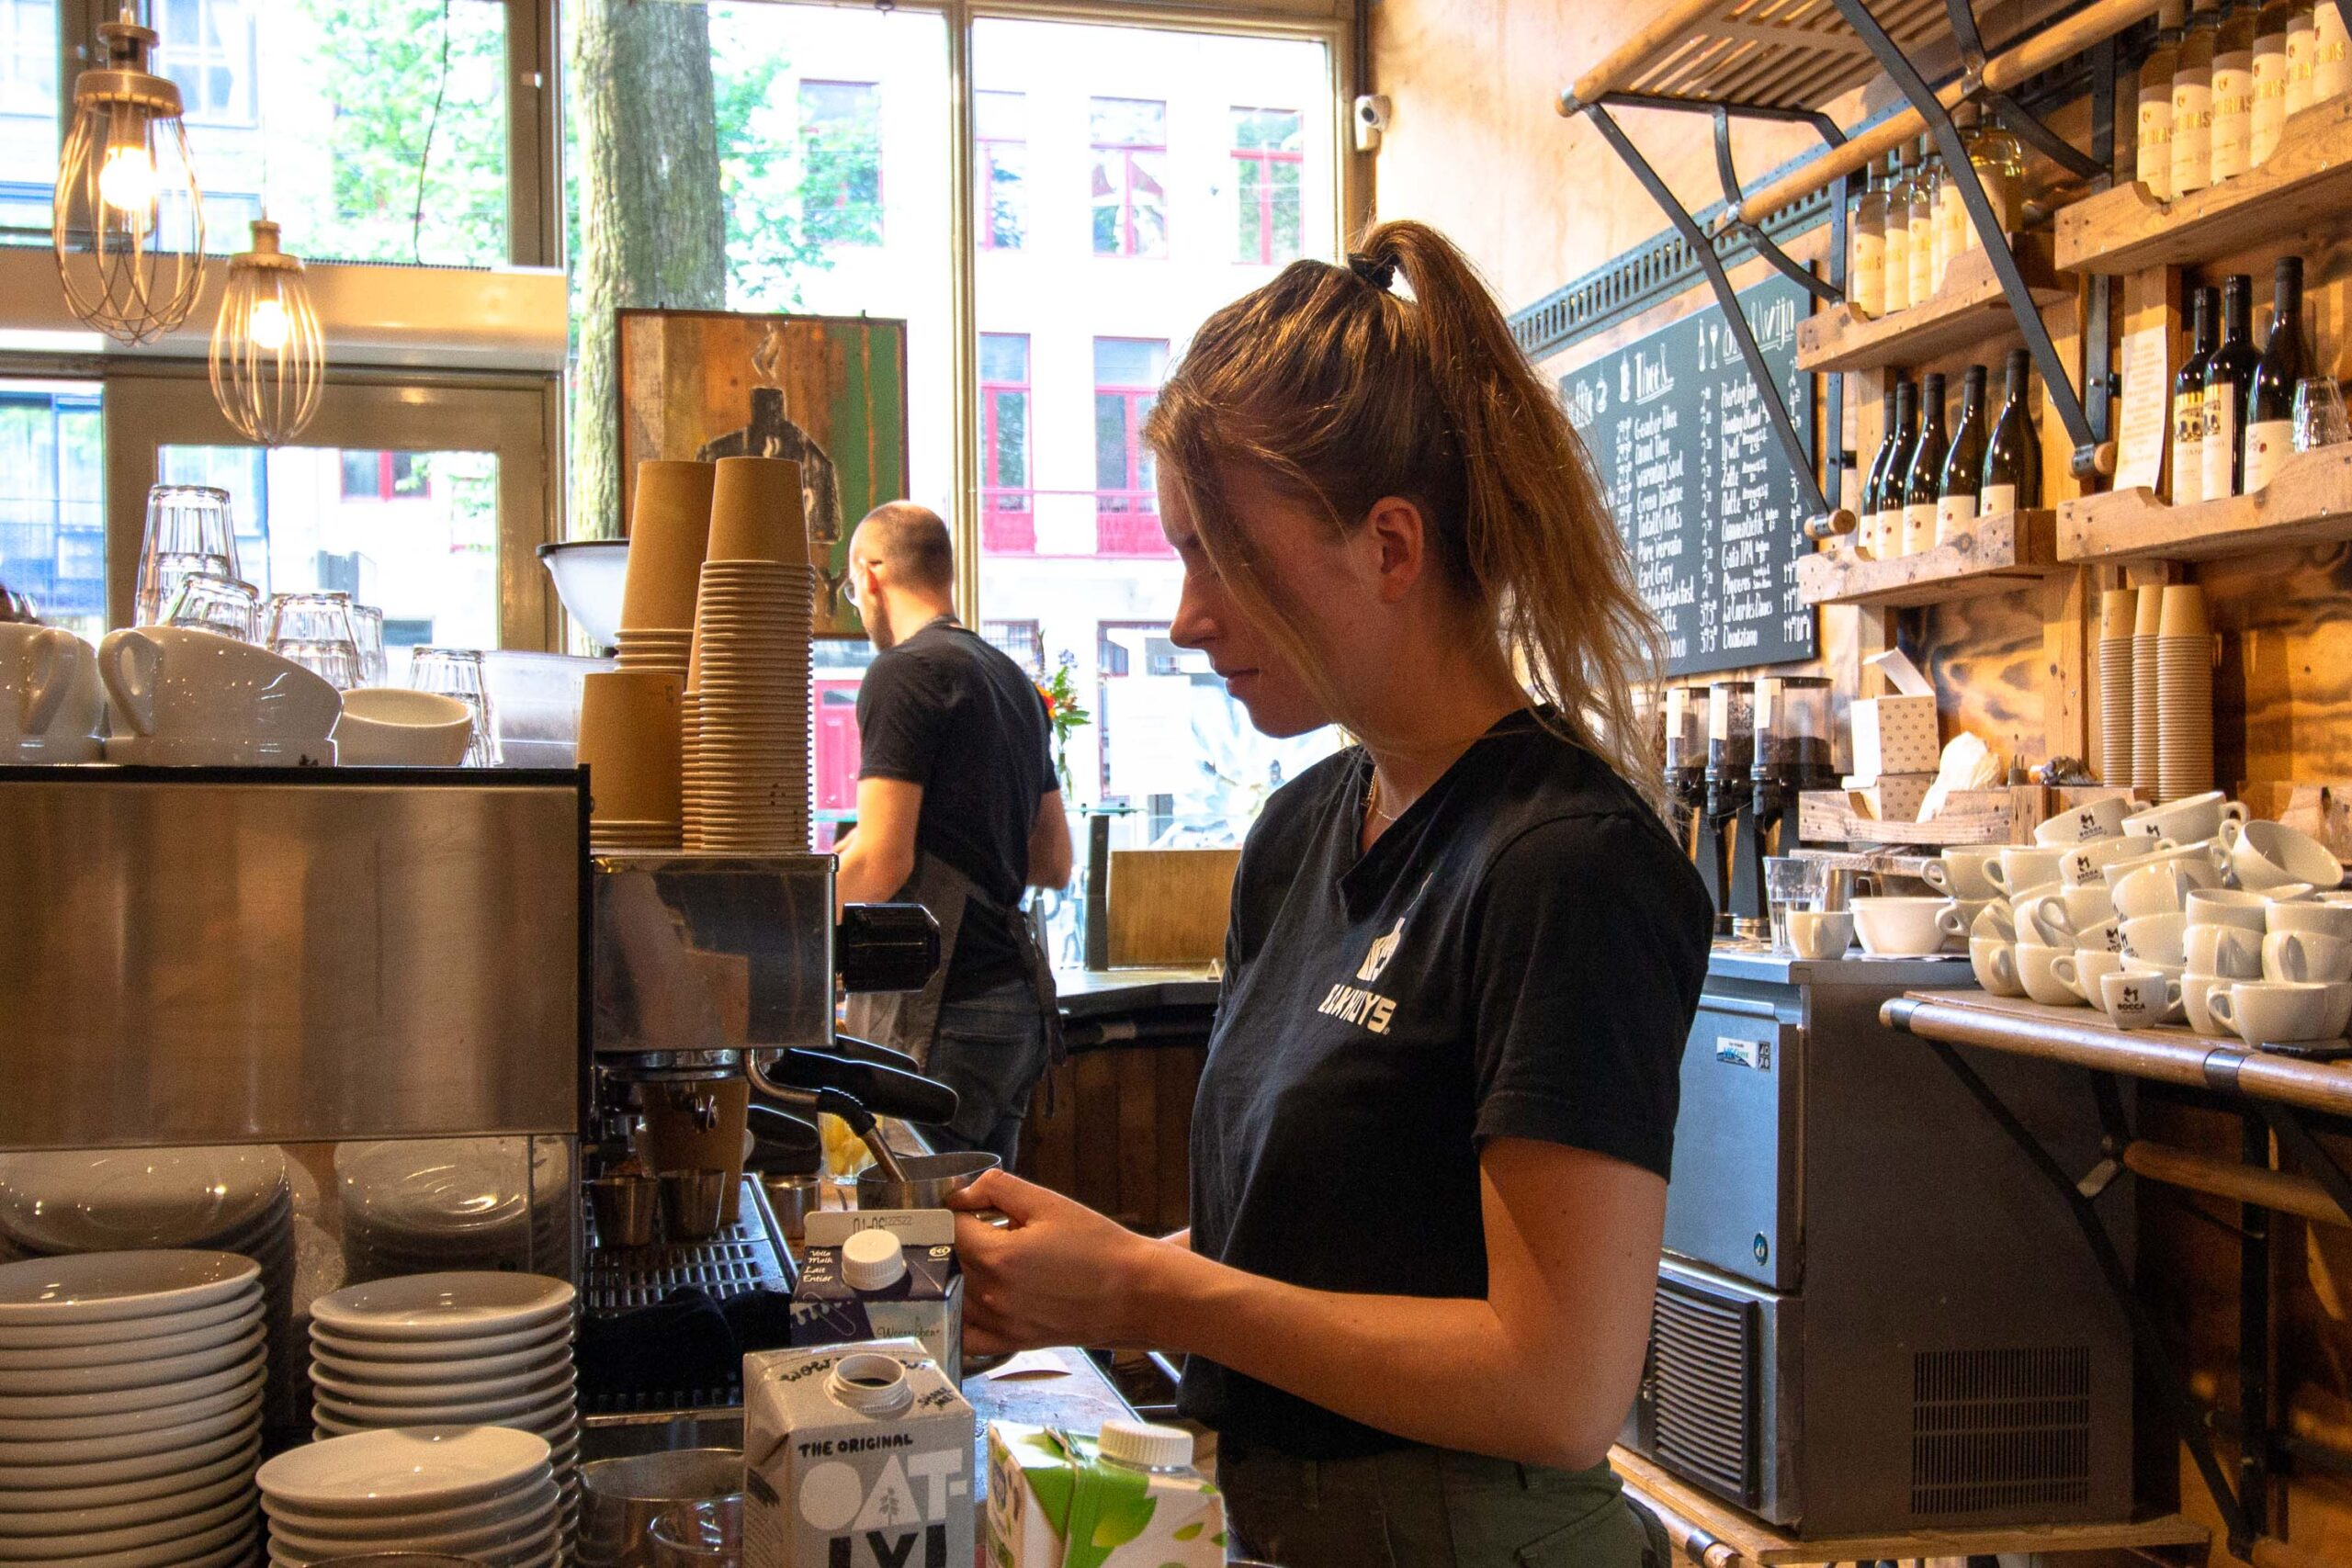 Bakhuys barista